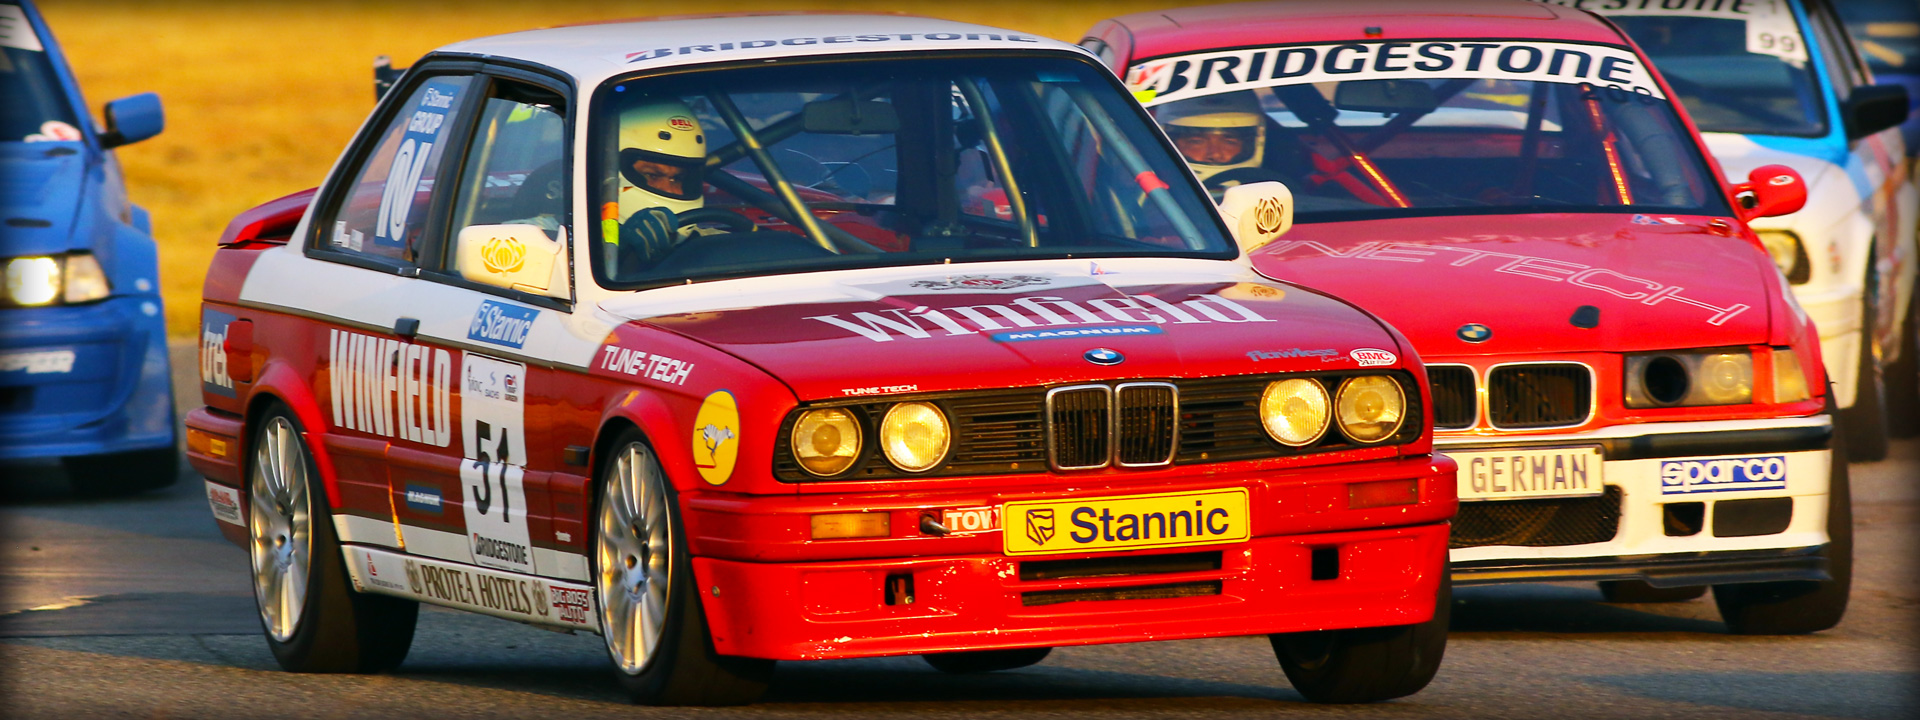 Inland Championship at Red Star Raceway on 13 August 2016 - Preview